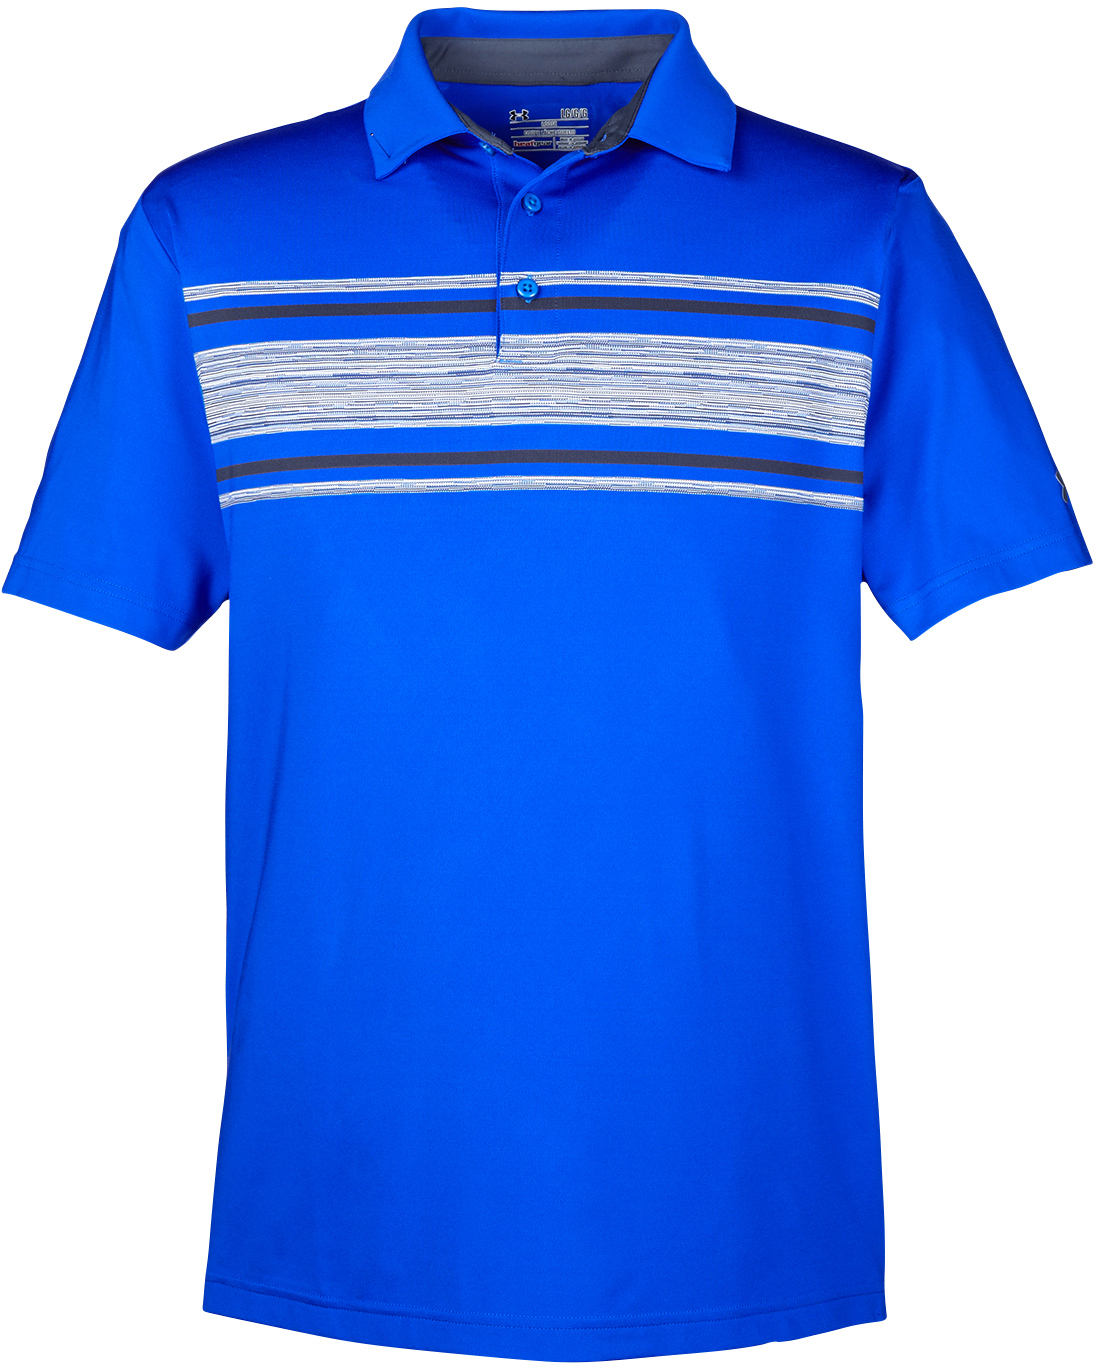 Under armour men 39 s corporate playoff space dyed polo for Under armor business shirts